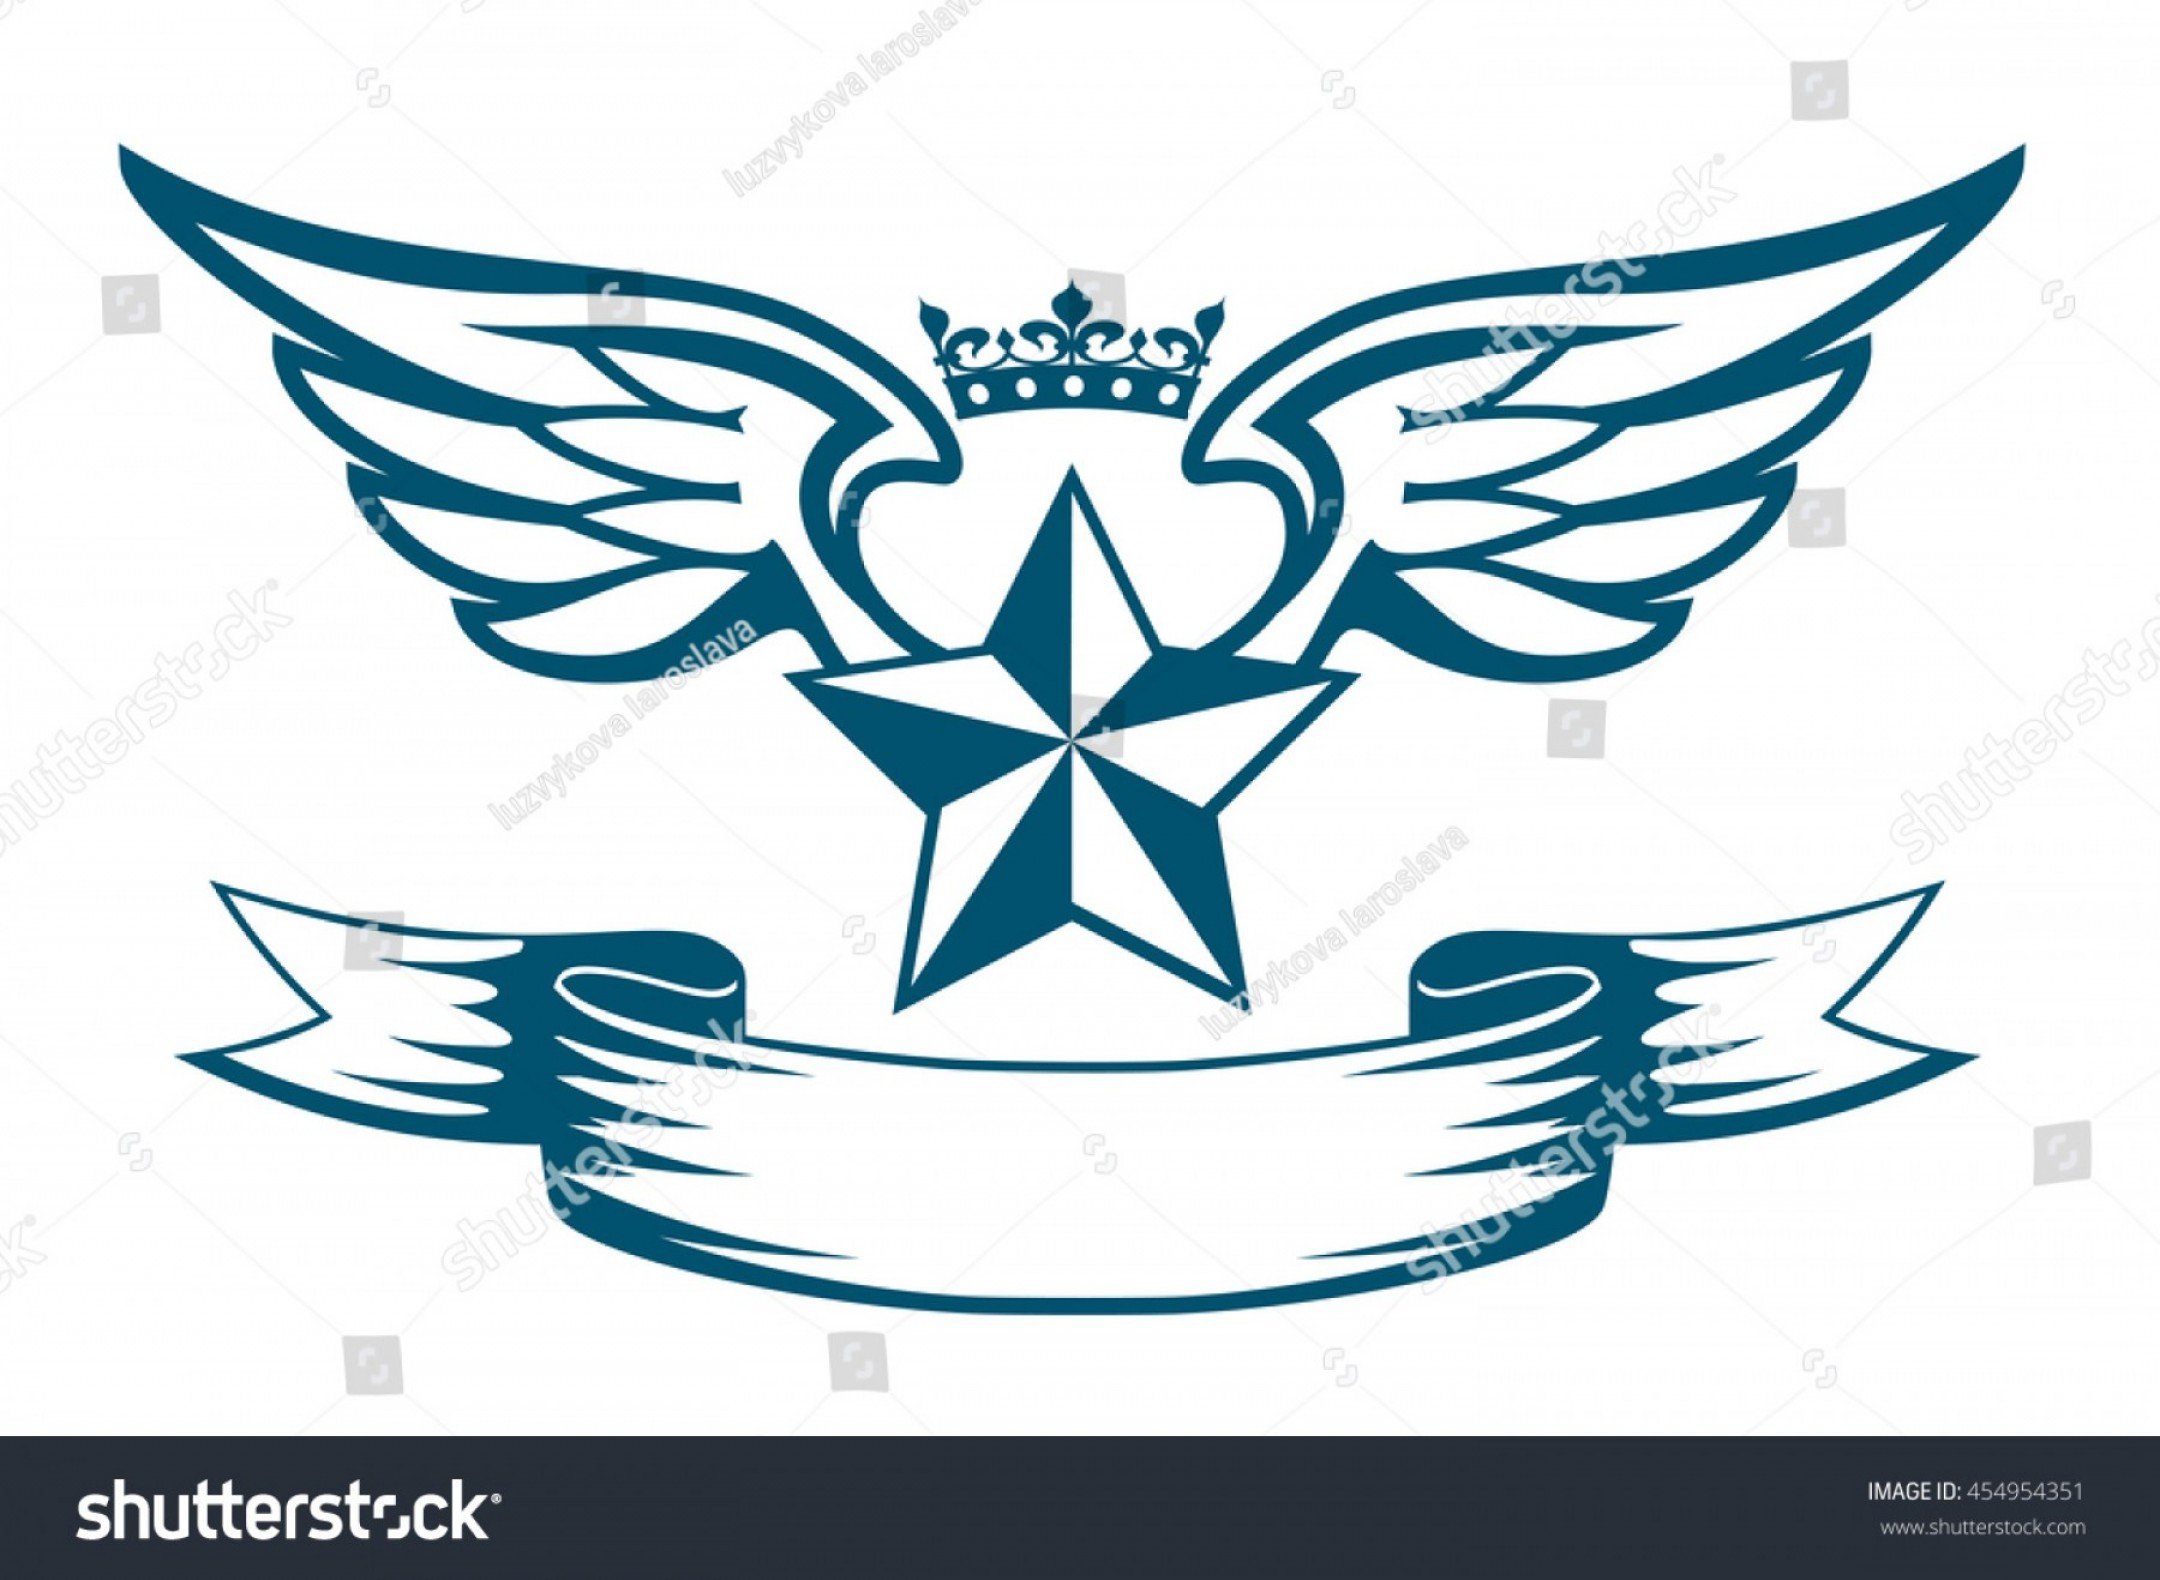 Army Aviator Wings Vector: Vector Monochrome Tattoo Logo Star Wings